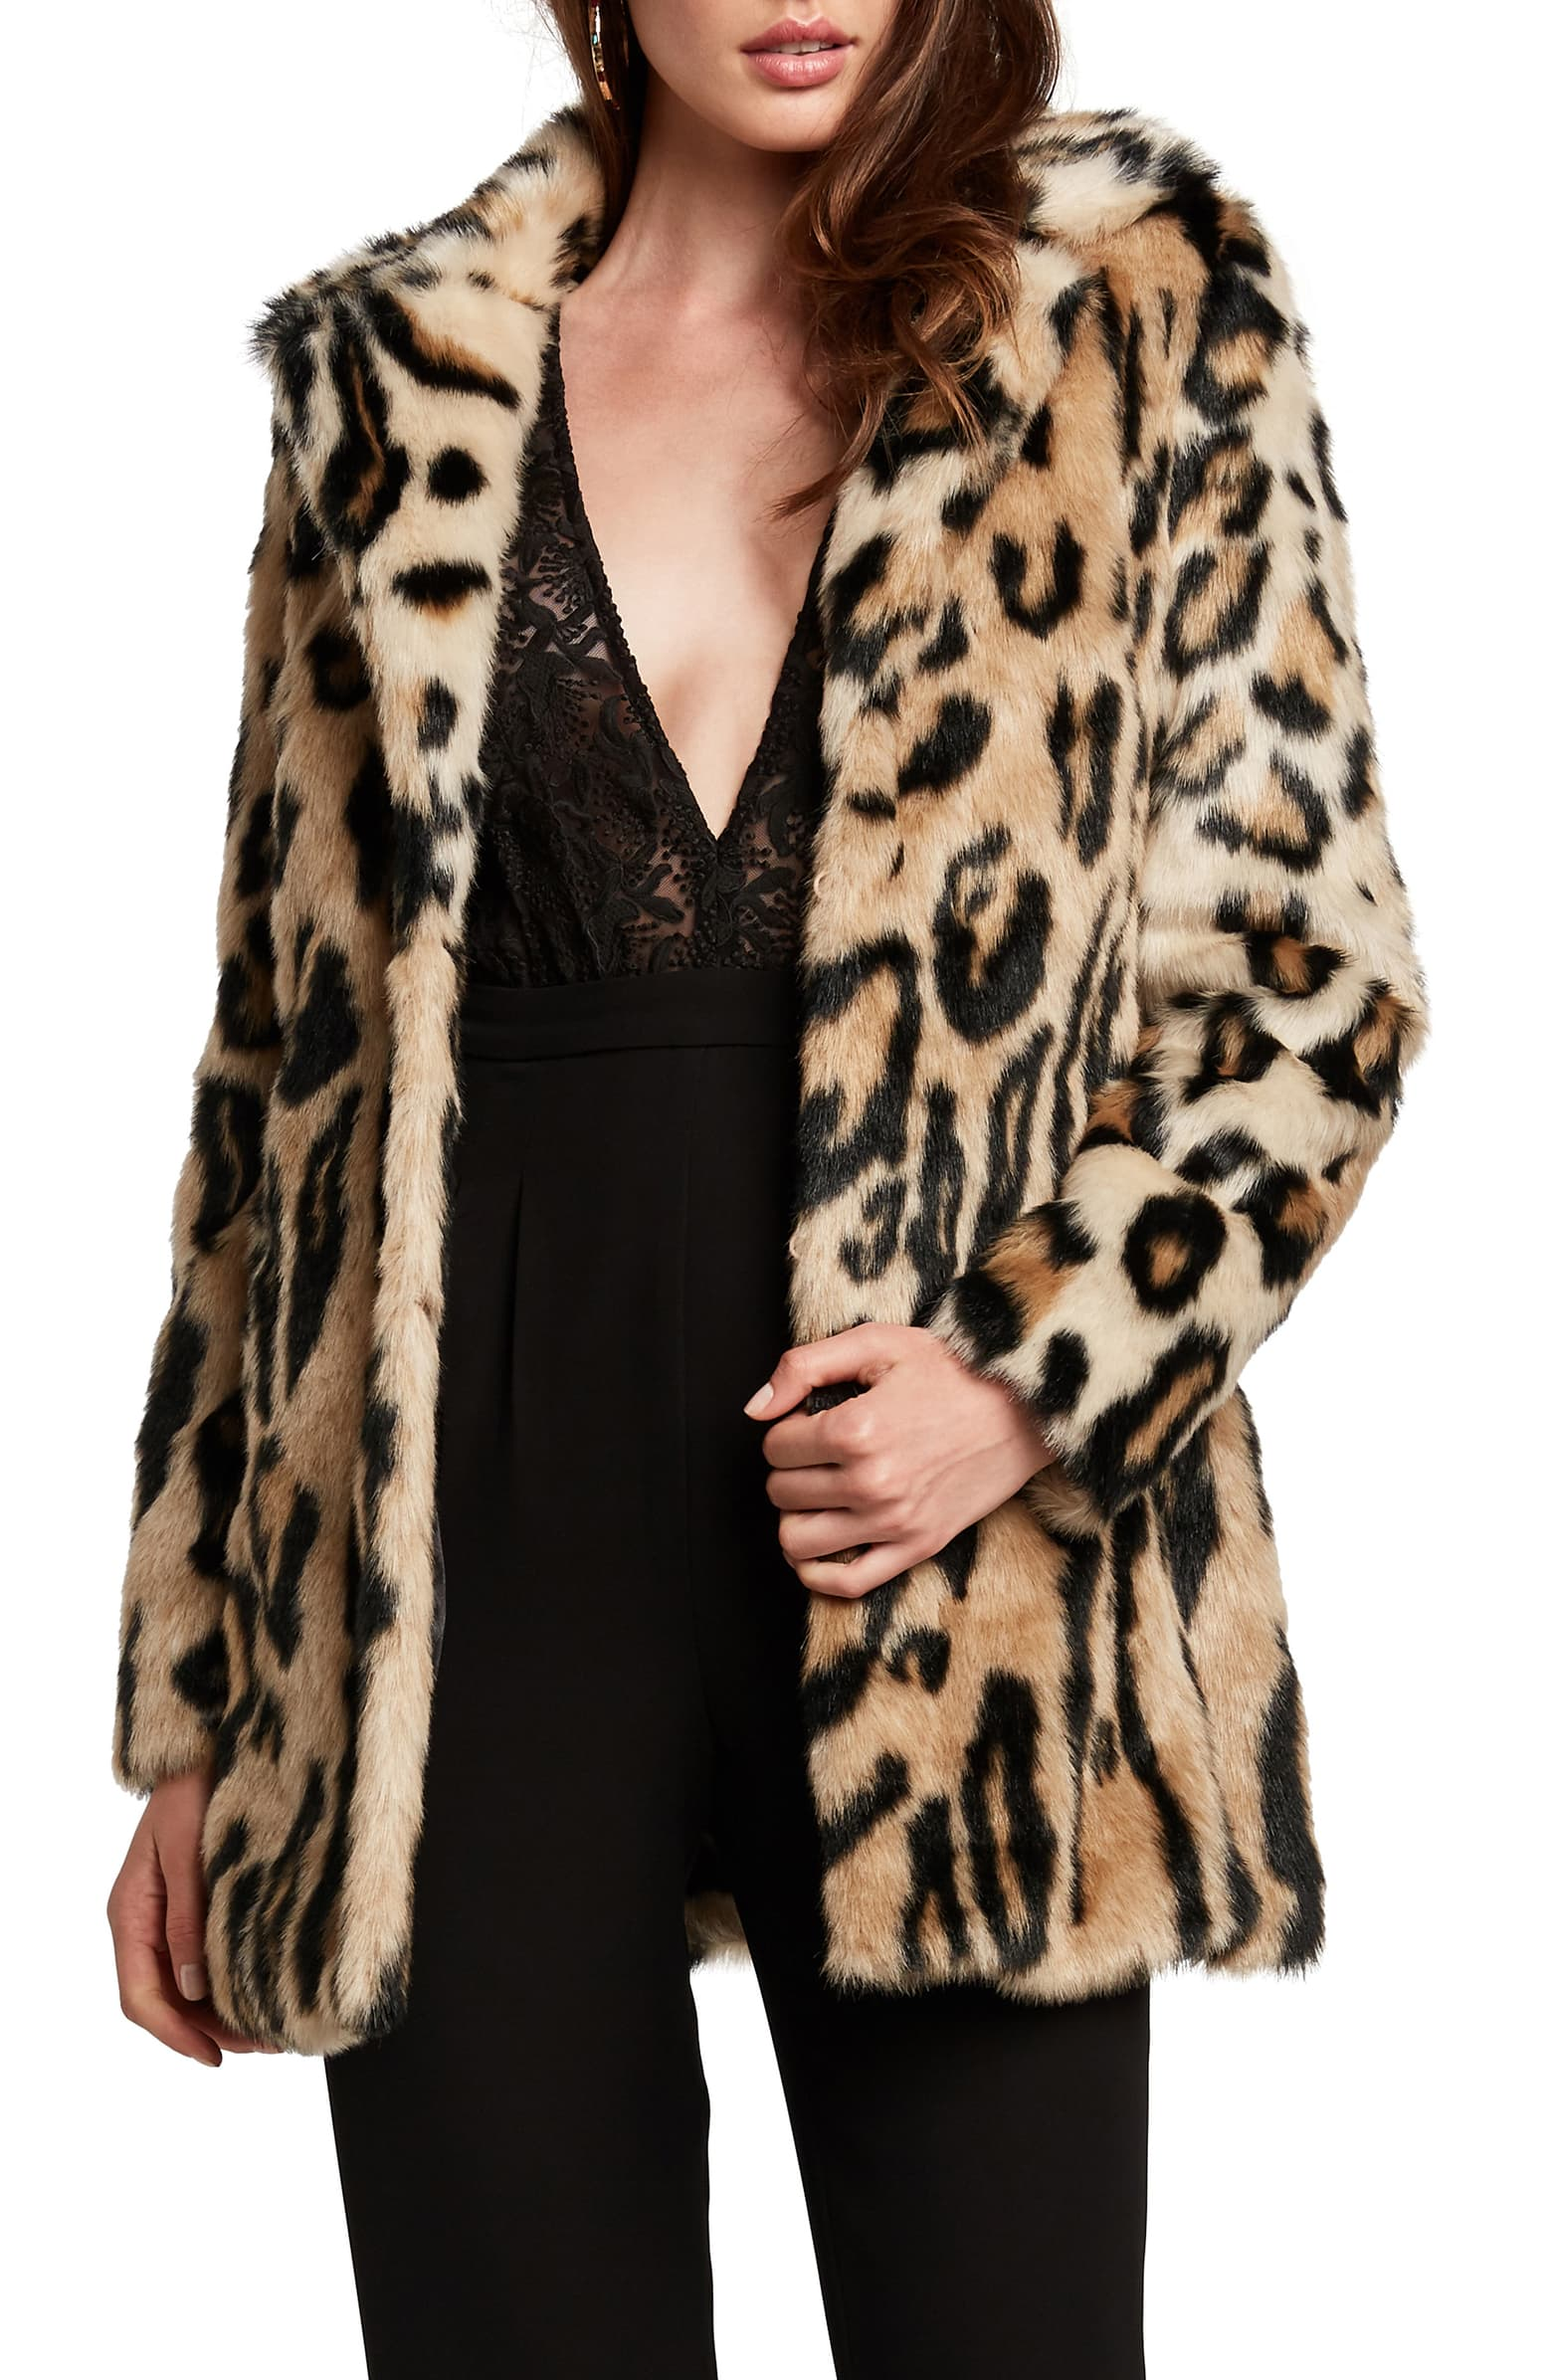 leopard print coat at every price point